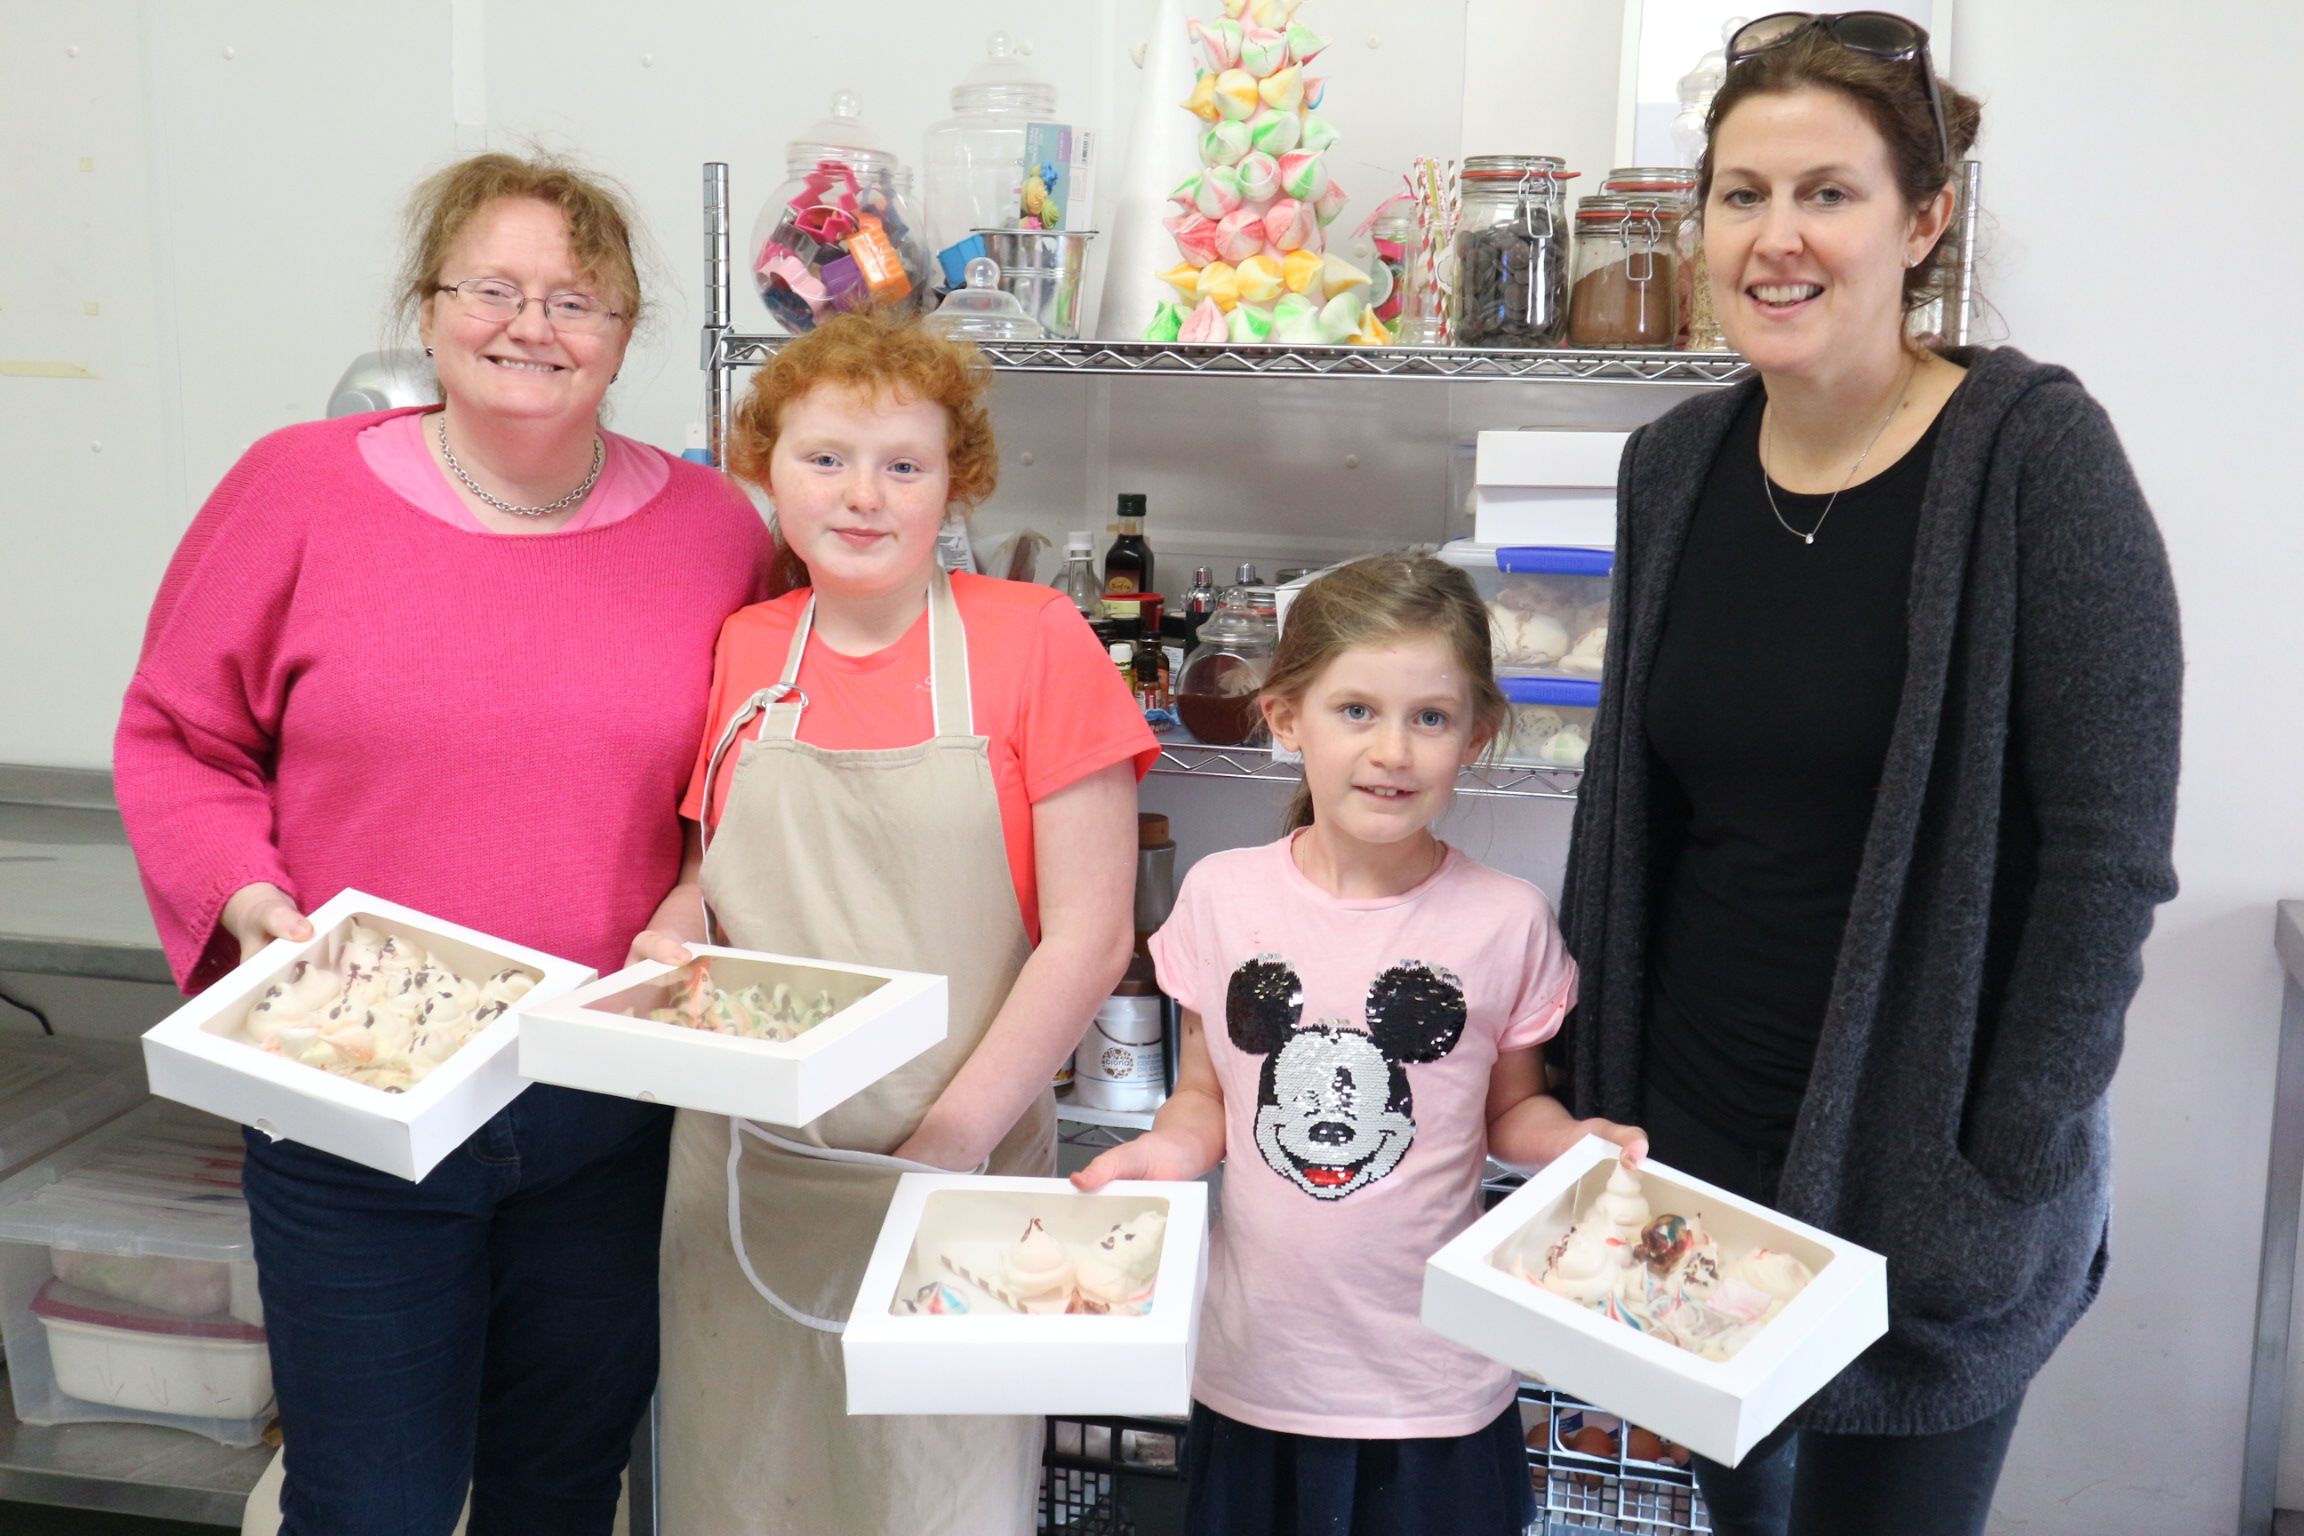 Parent and child class, Childrens baking class